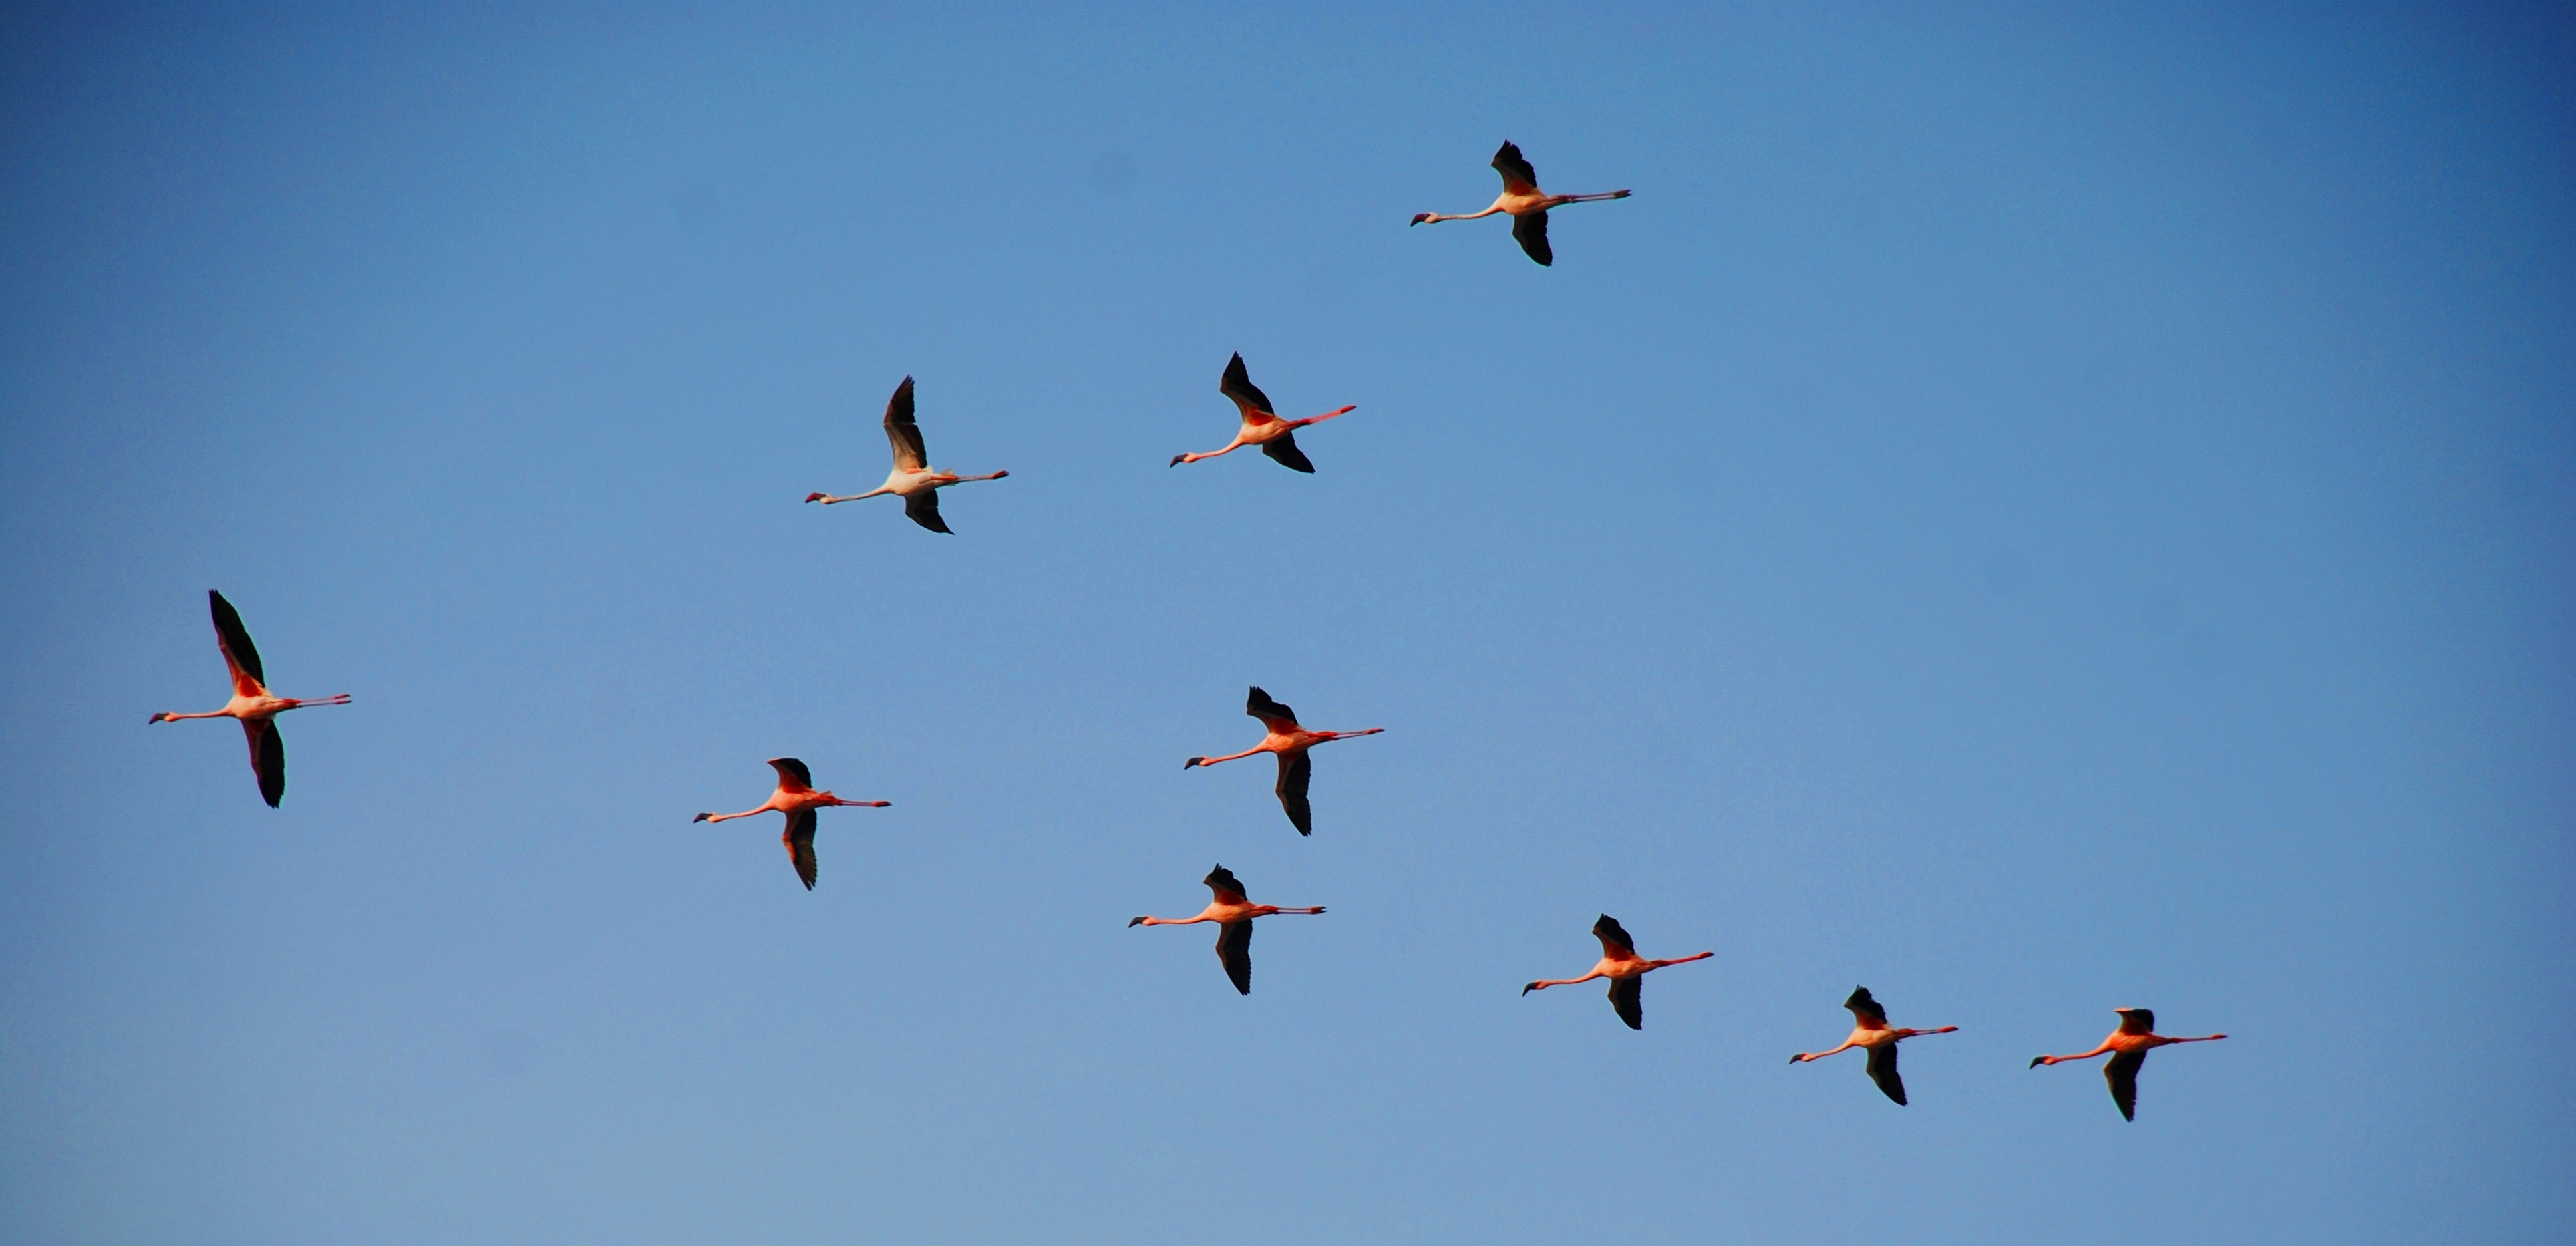 Free Birds Flying, Download Free Clip Art, Free Clip Art on.